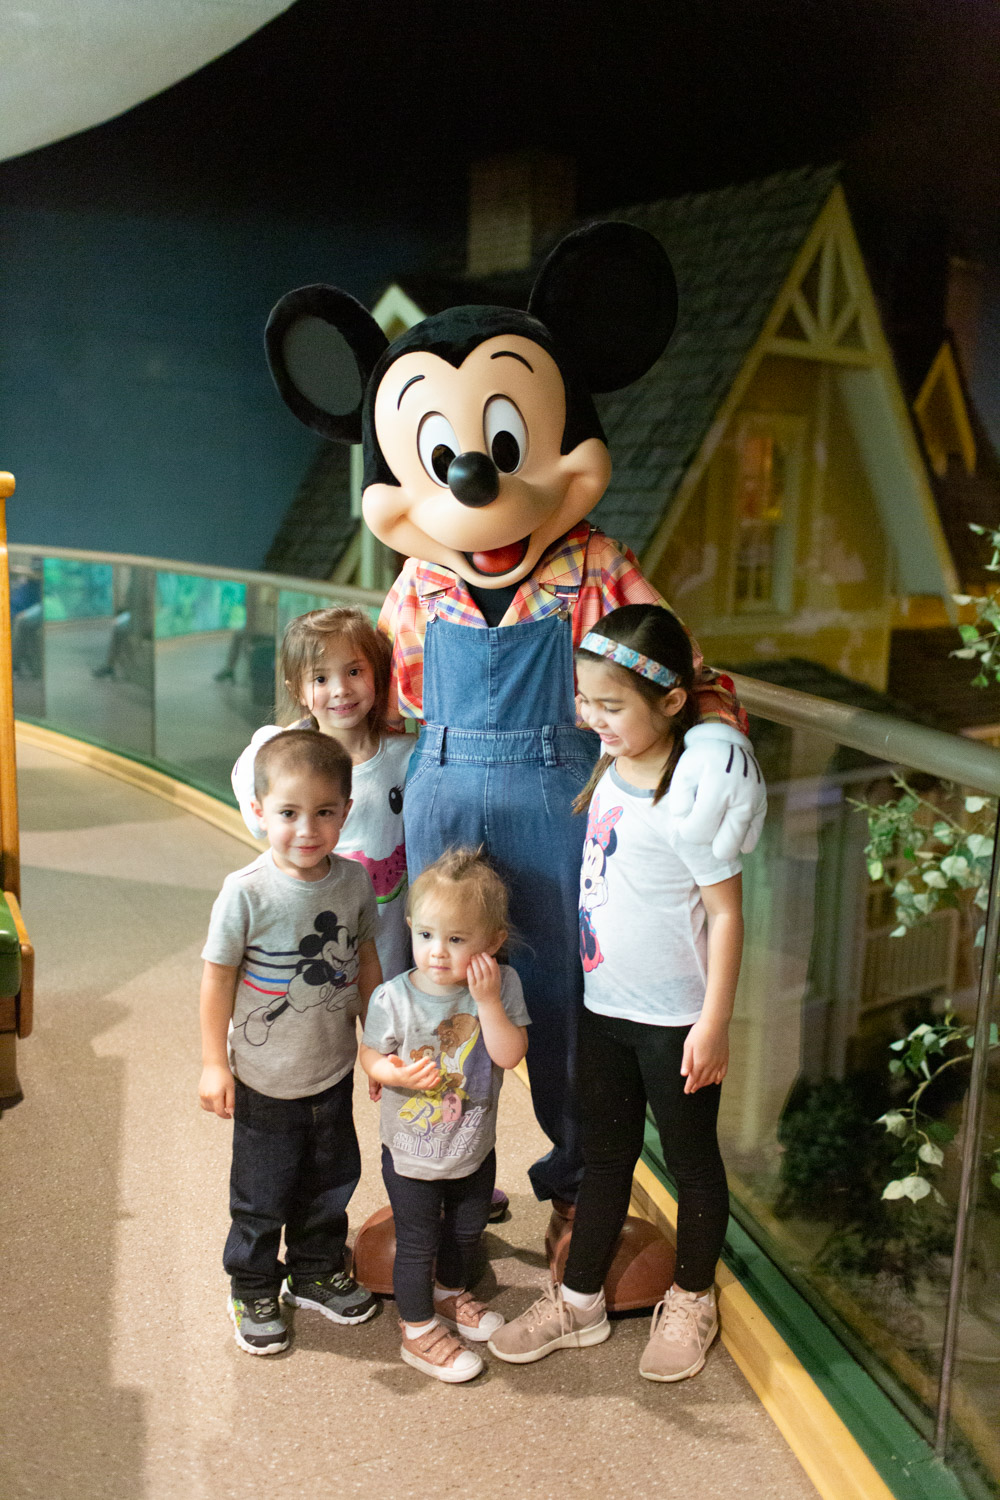 Disney restaurant review at Garden Grill Mickey Mouse photo